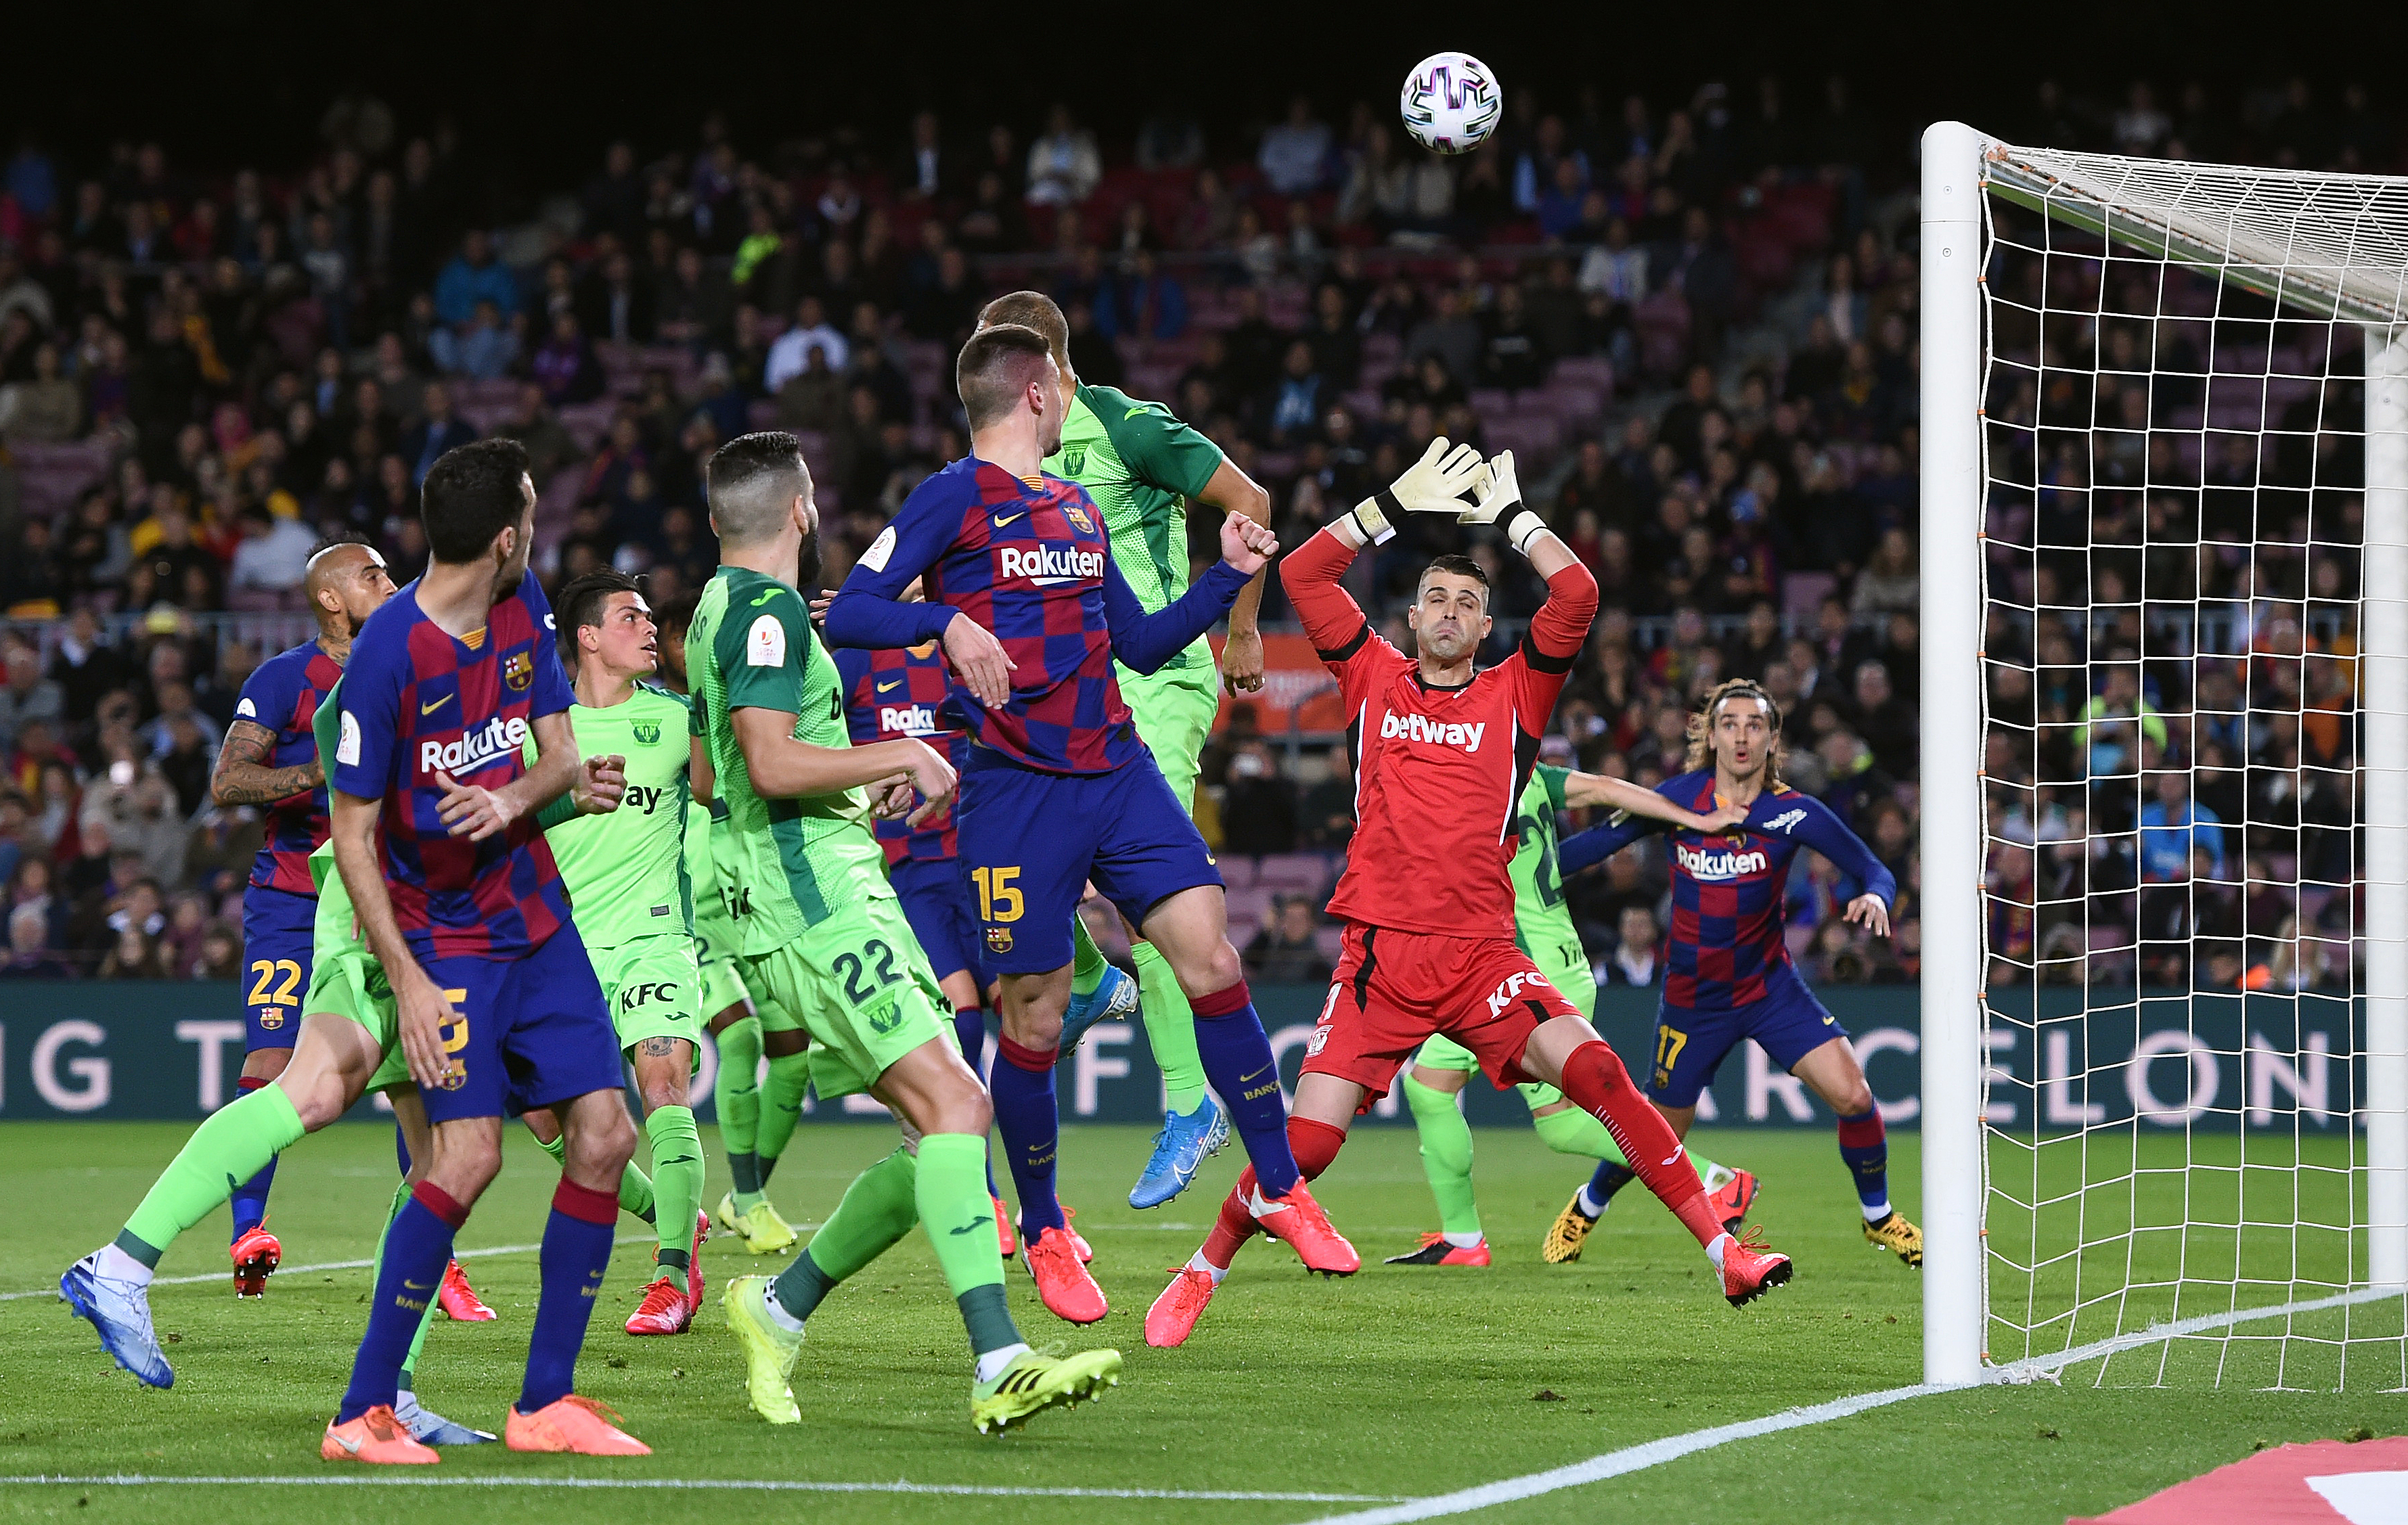 A brilliant header by Lenglet to score Barcelona's second. (Photo by Alex Caparros/Getty Images)